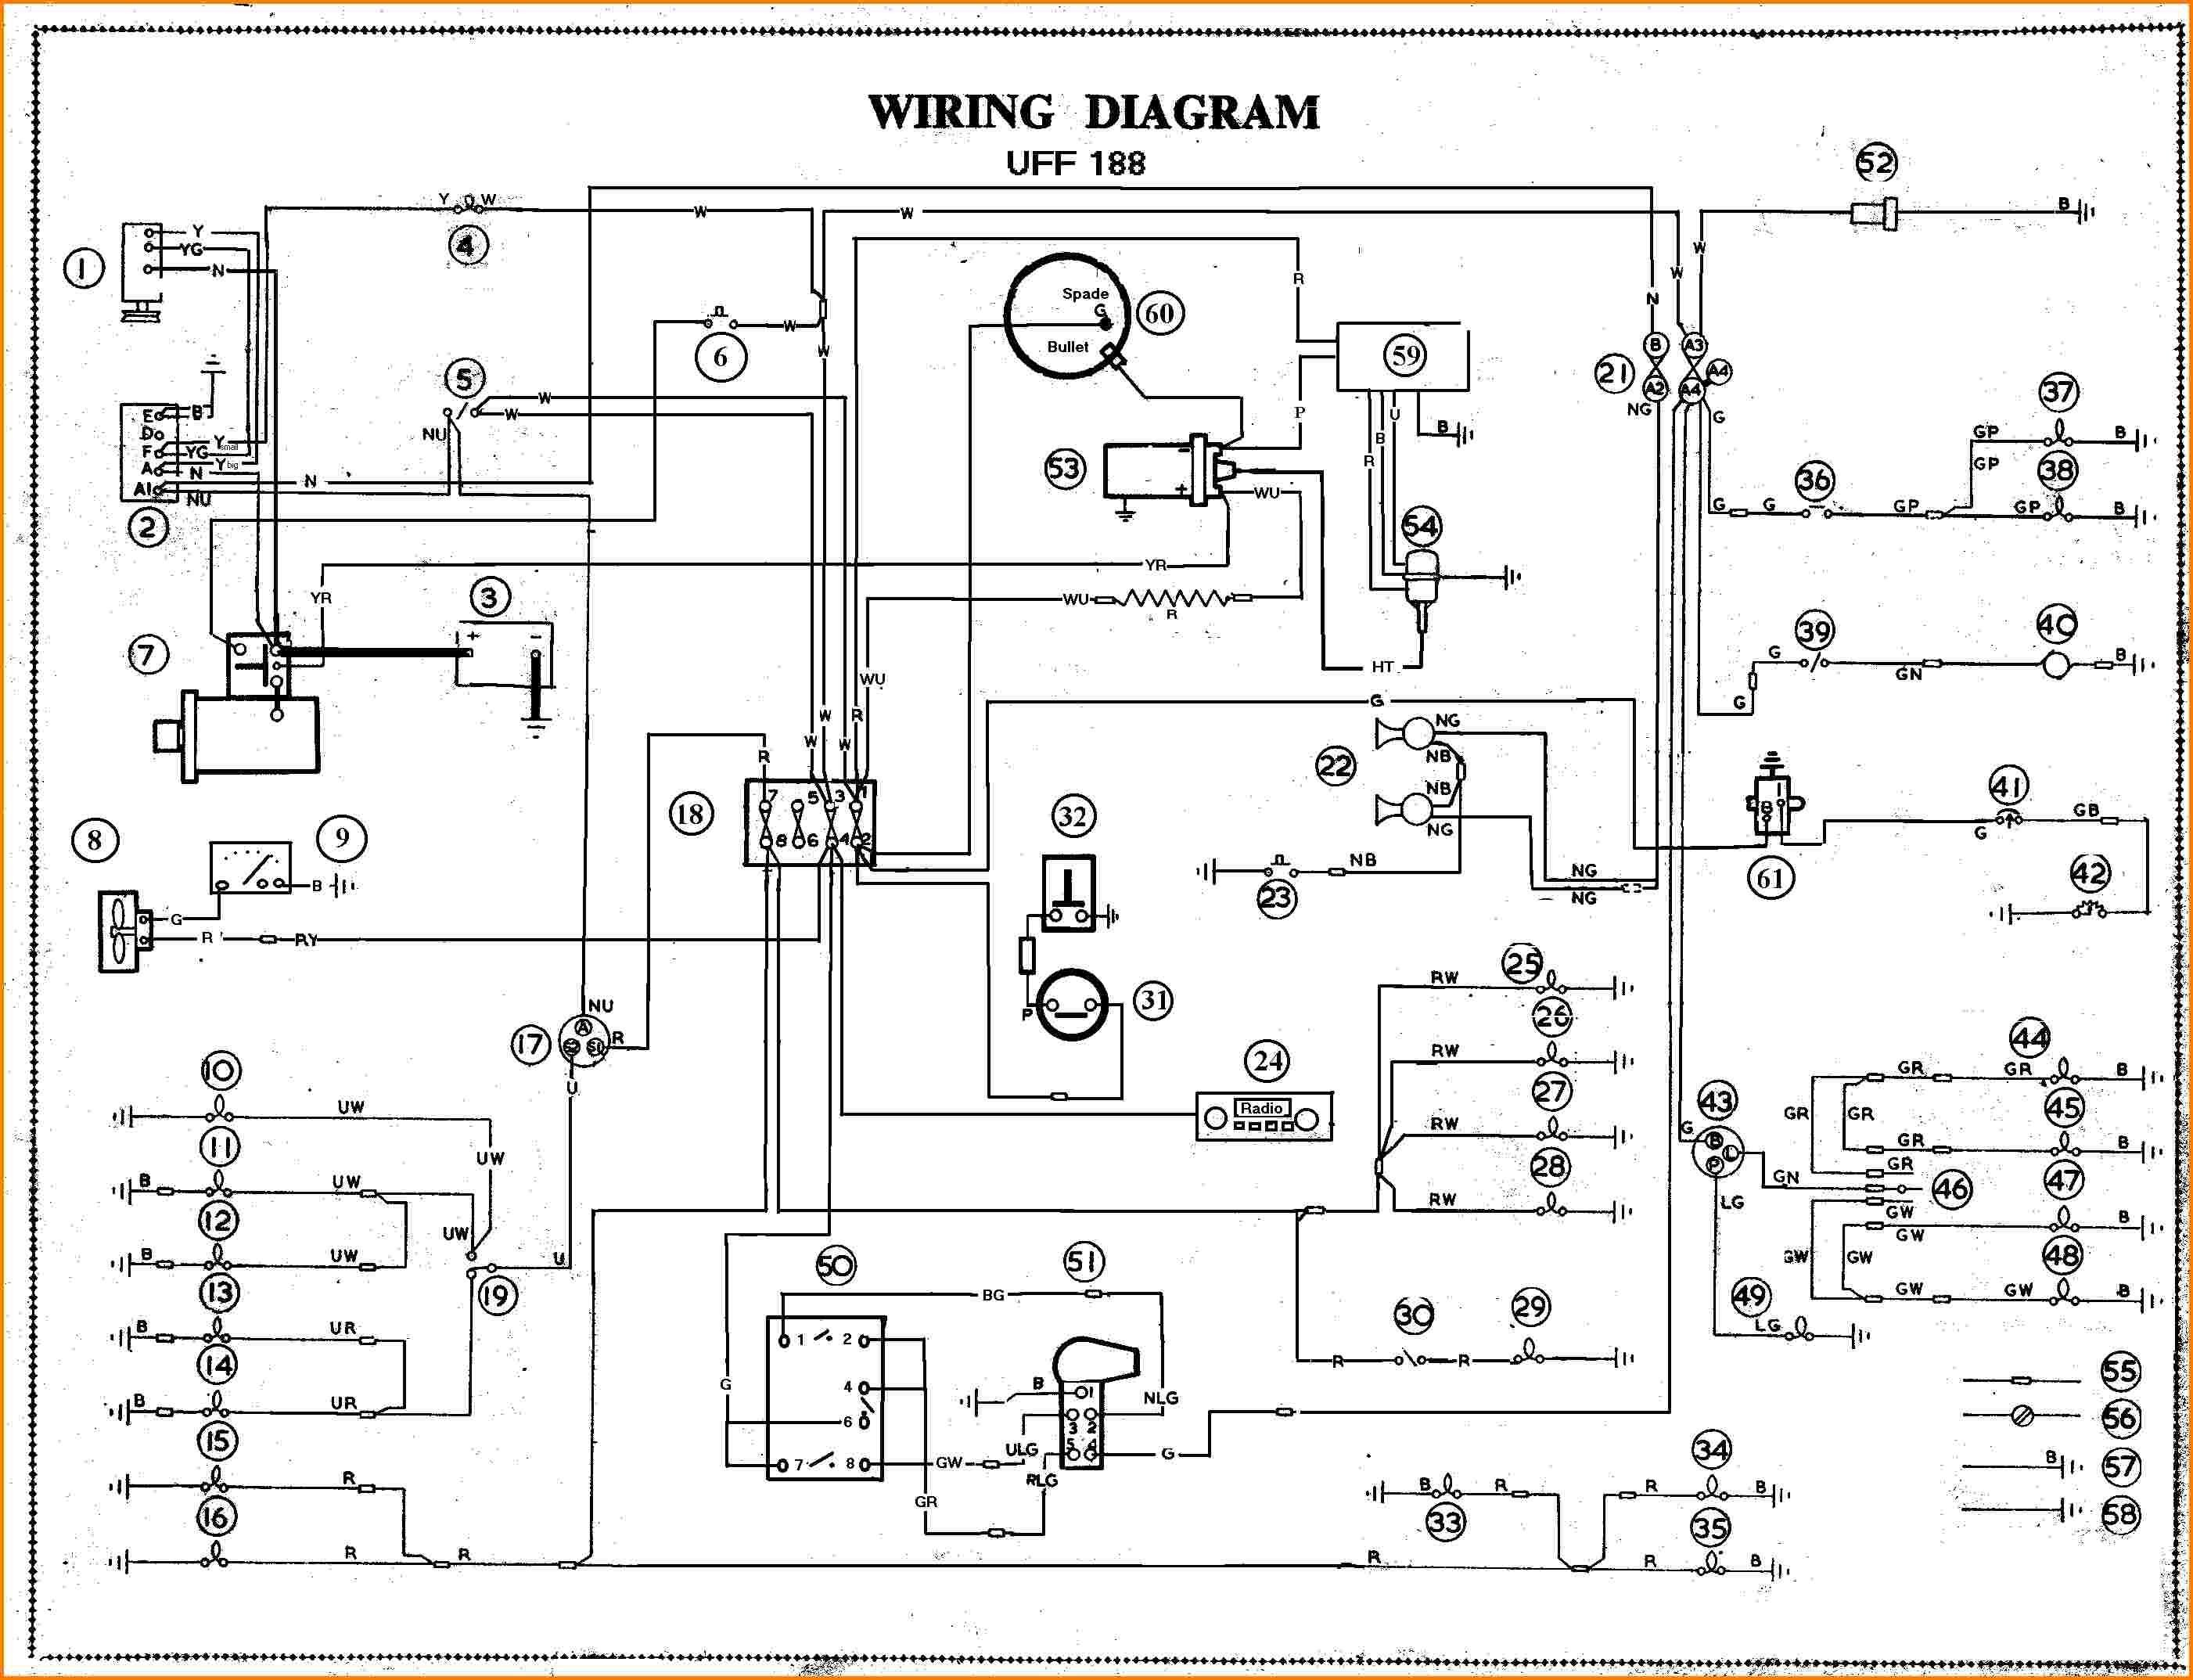 ... 2000 chevy c3500 wiring diagram free picture easy to read wiring rh  mywiringdiagram today 2000 Chevy